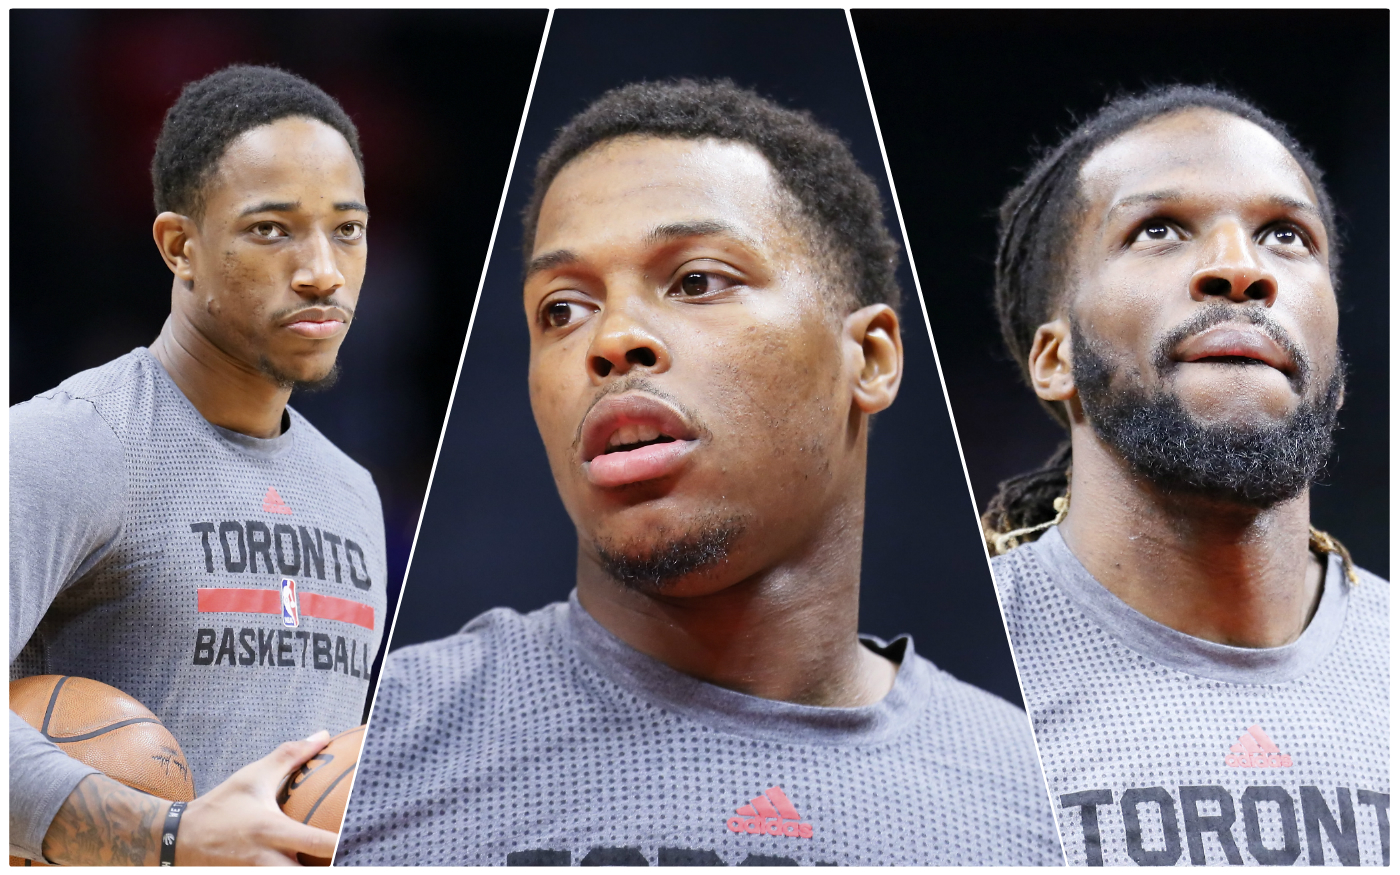 On a envie d'être optimistes pour les Raptors mais on n'y arrive pas